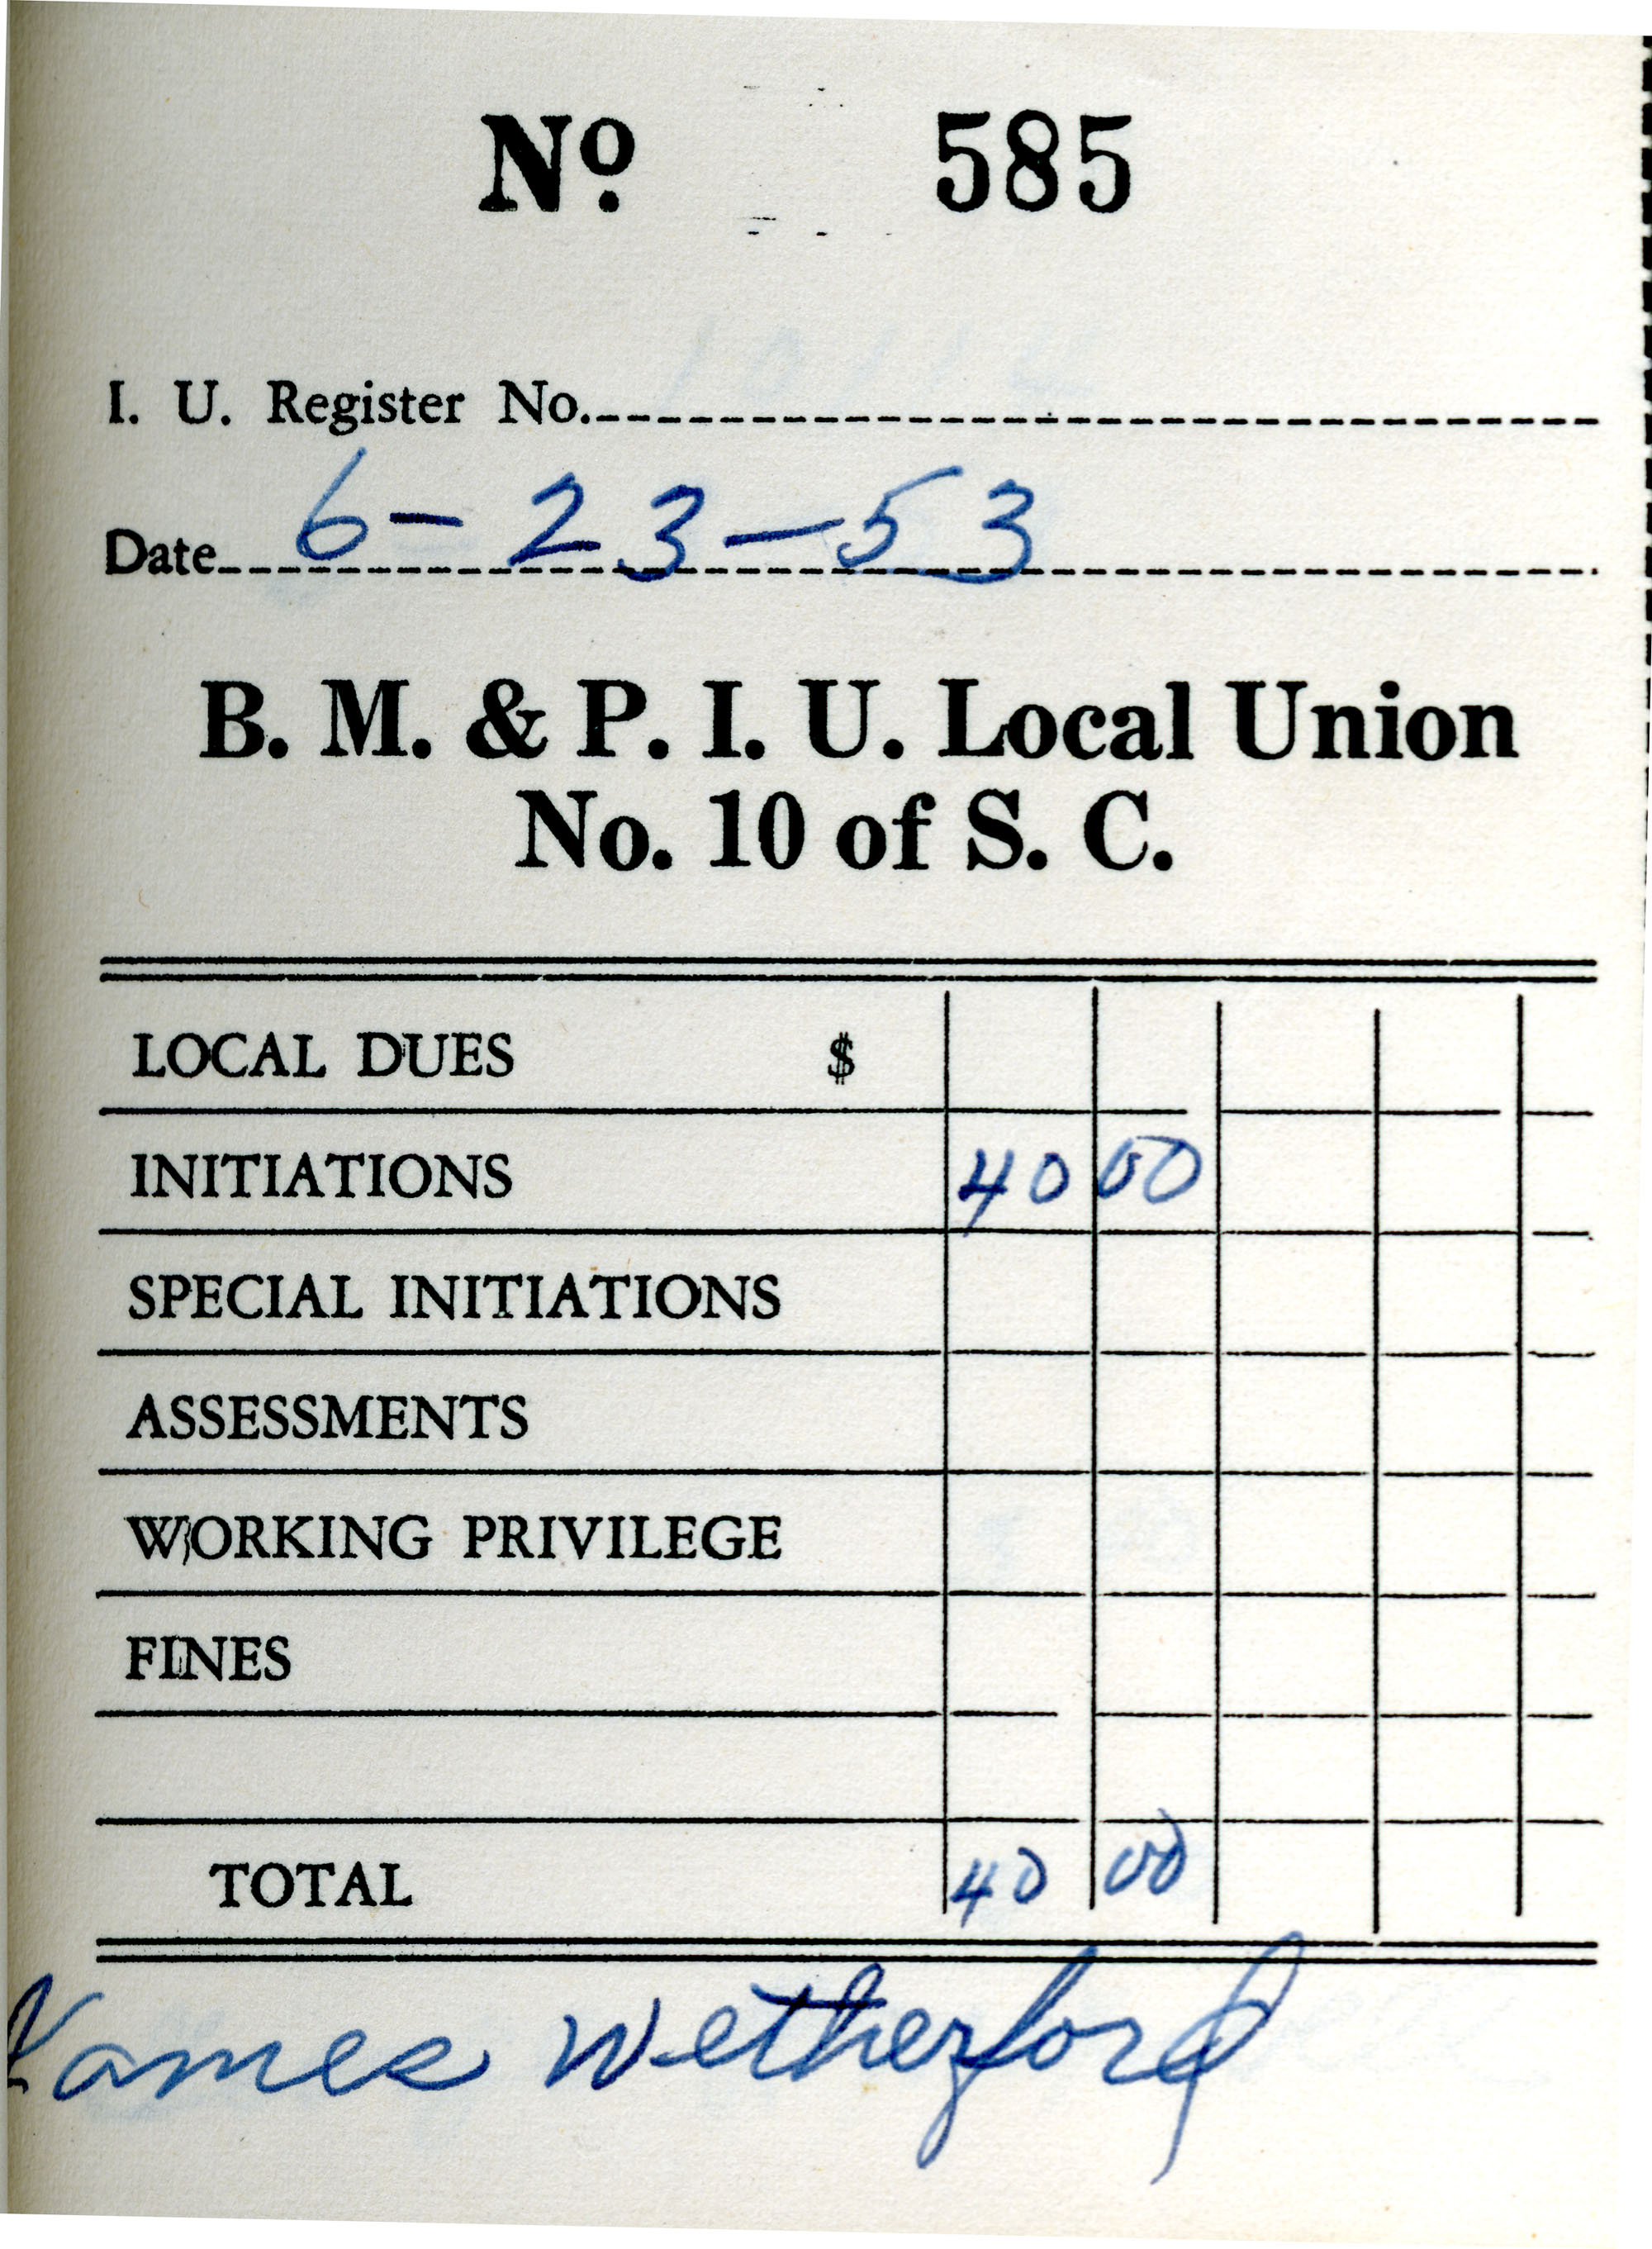 Receipt Book 1, Page 35